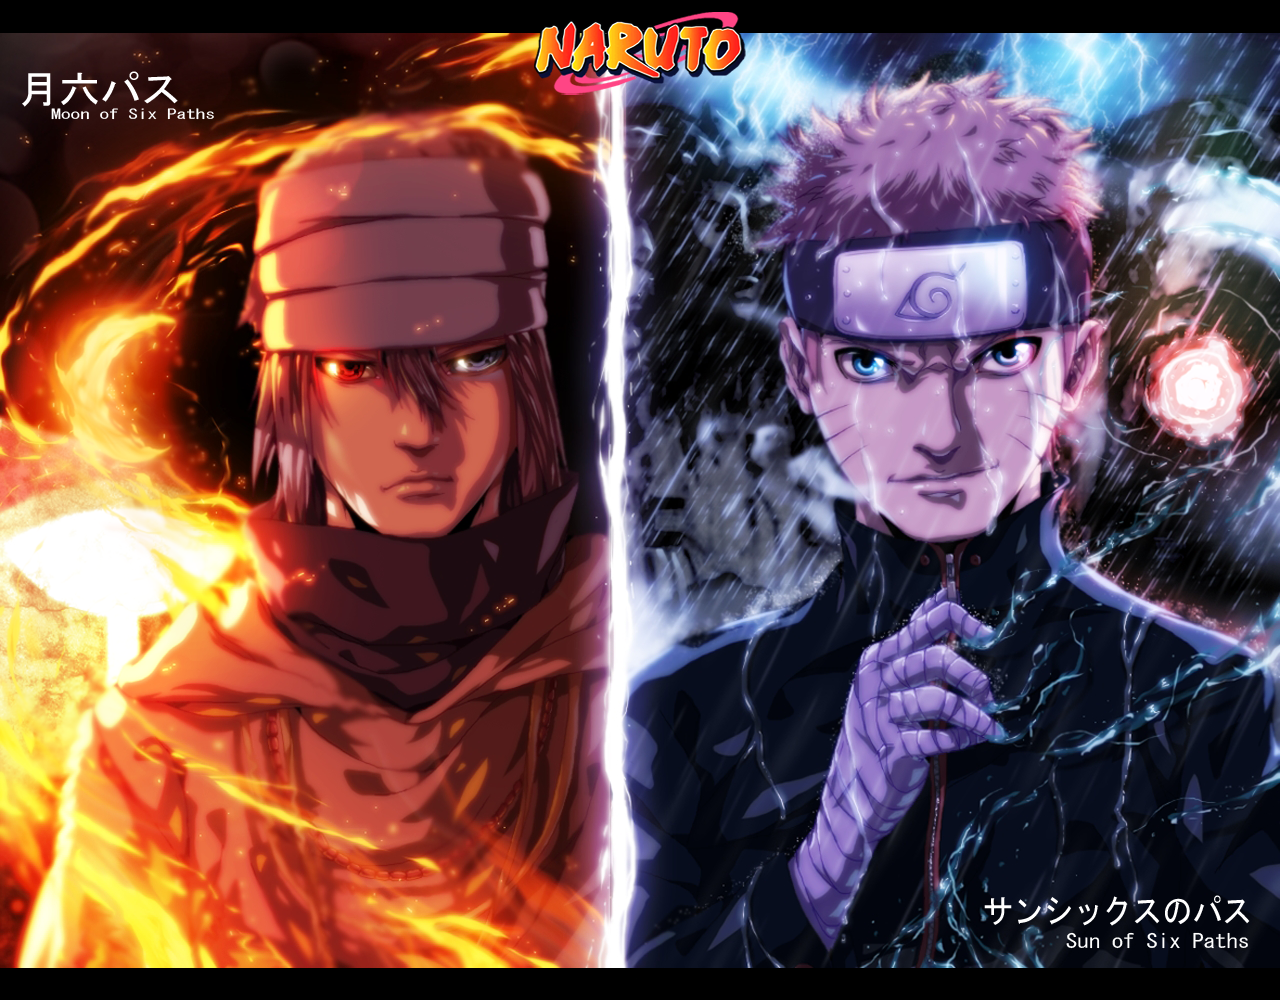 Download Wallpaper Naruto Dual Screen - naruto-and-sasuke-wallpapers-21  Gallery_69947.jpg